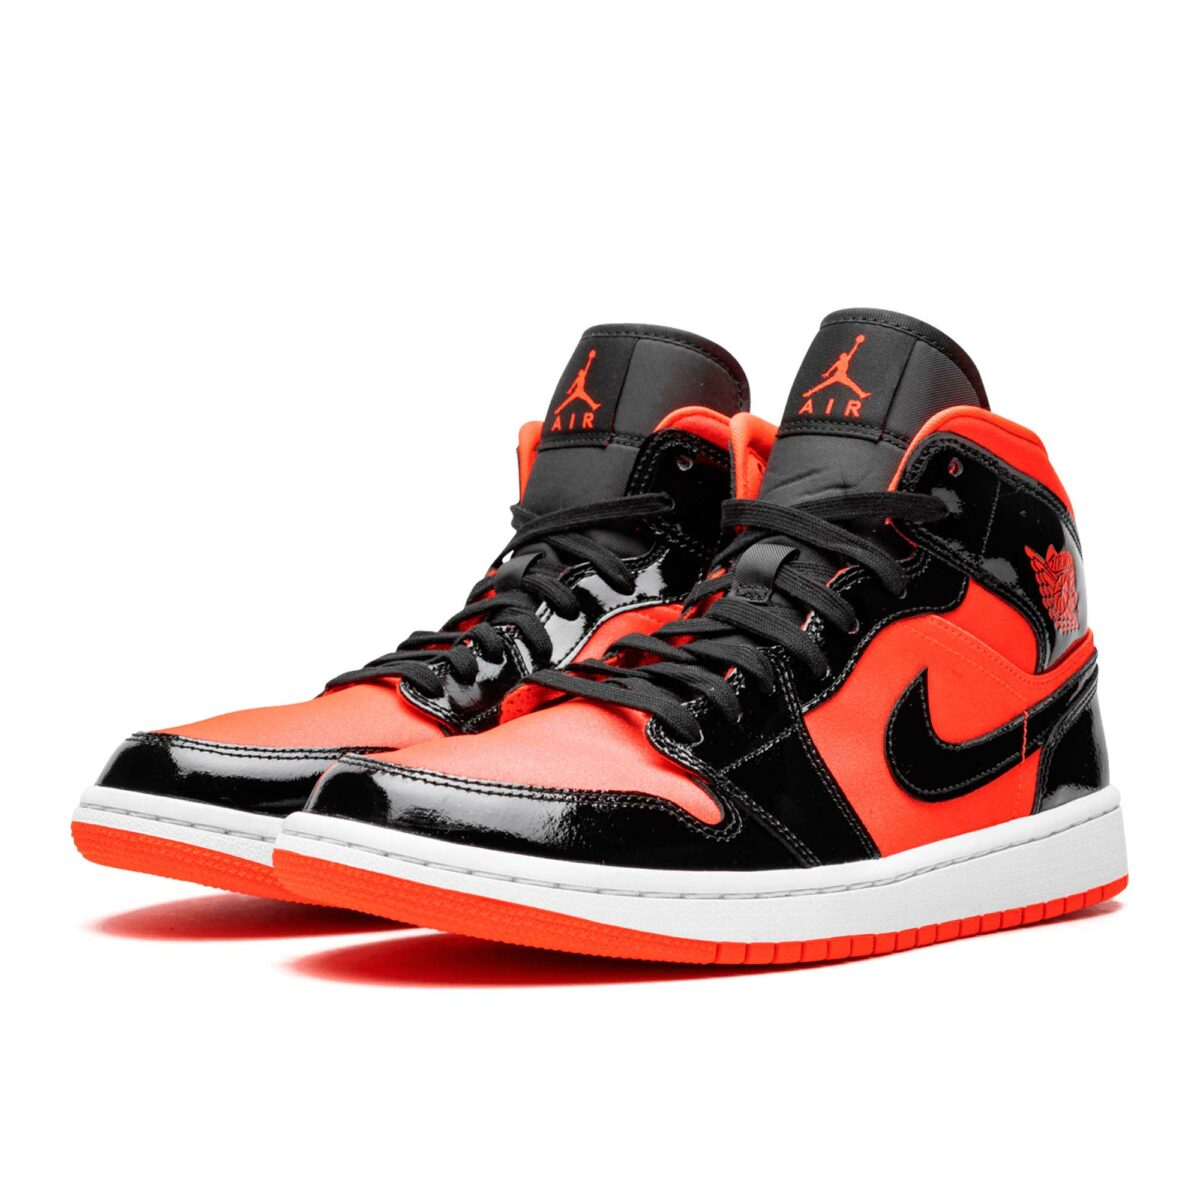 nike air Jordan 1 mid hot punch BQ6472_600 купить